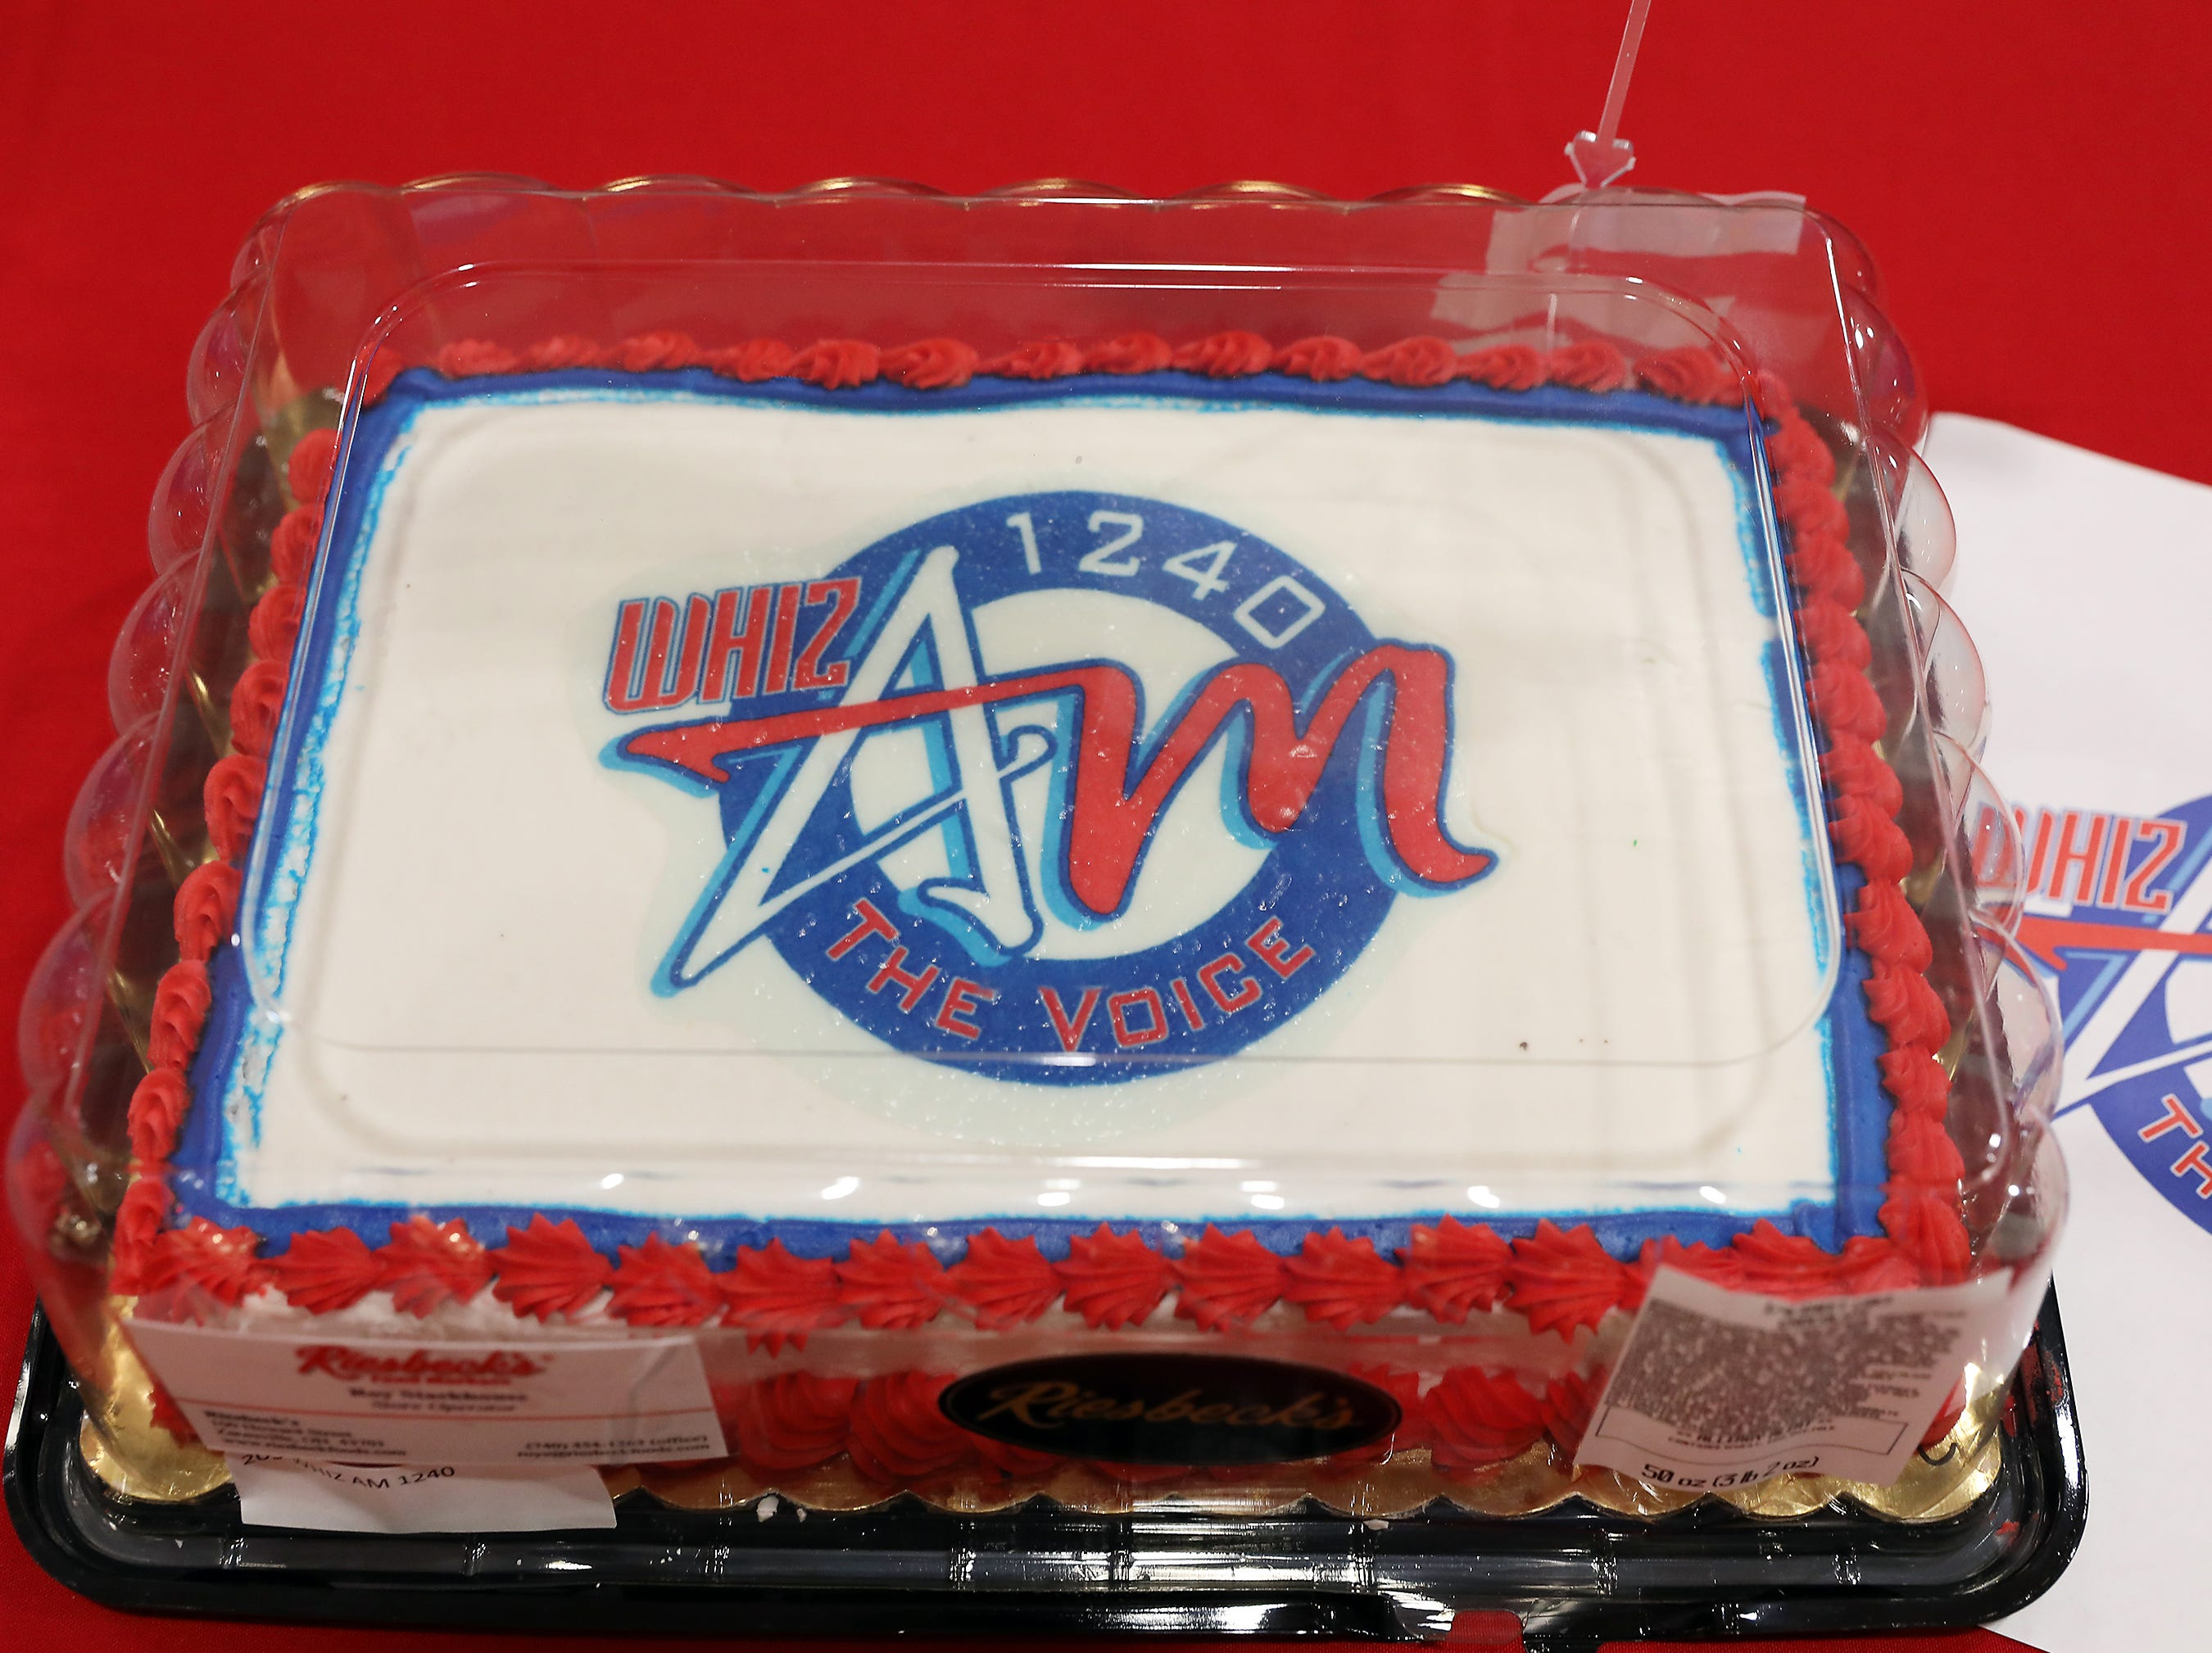 8:15 A.M. Friday cake 209 WHIZ AM 1240 -  2 tickets to Reds game July 7